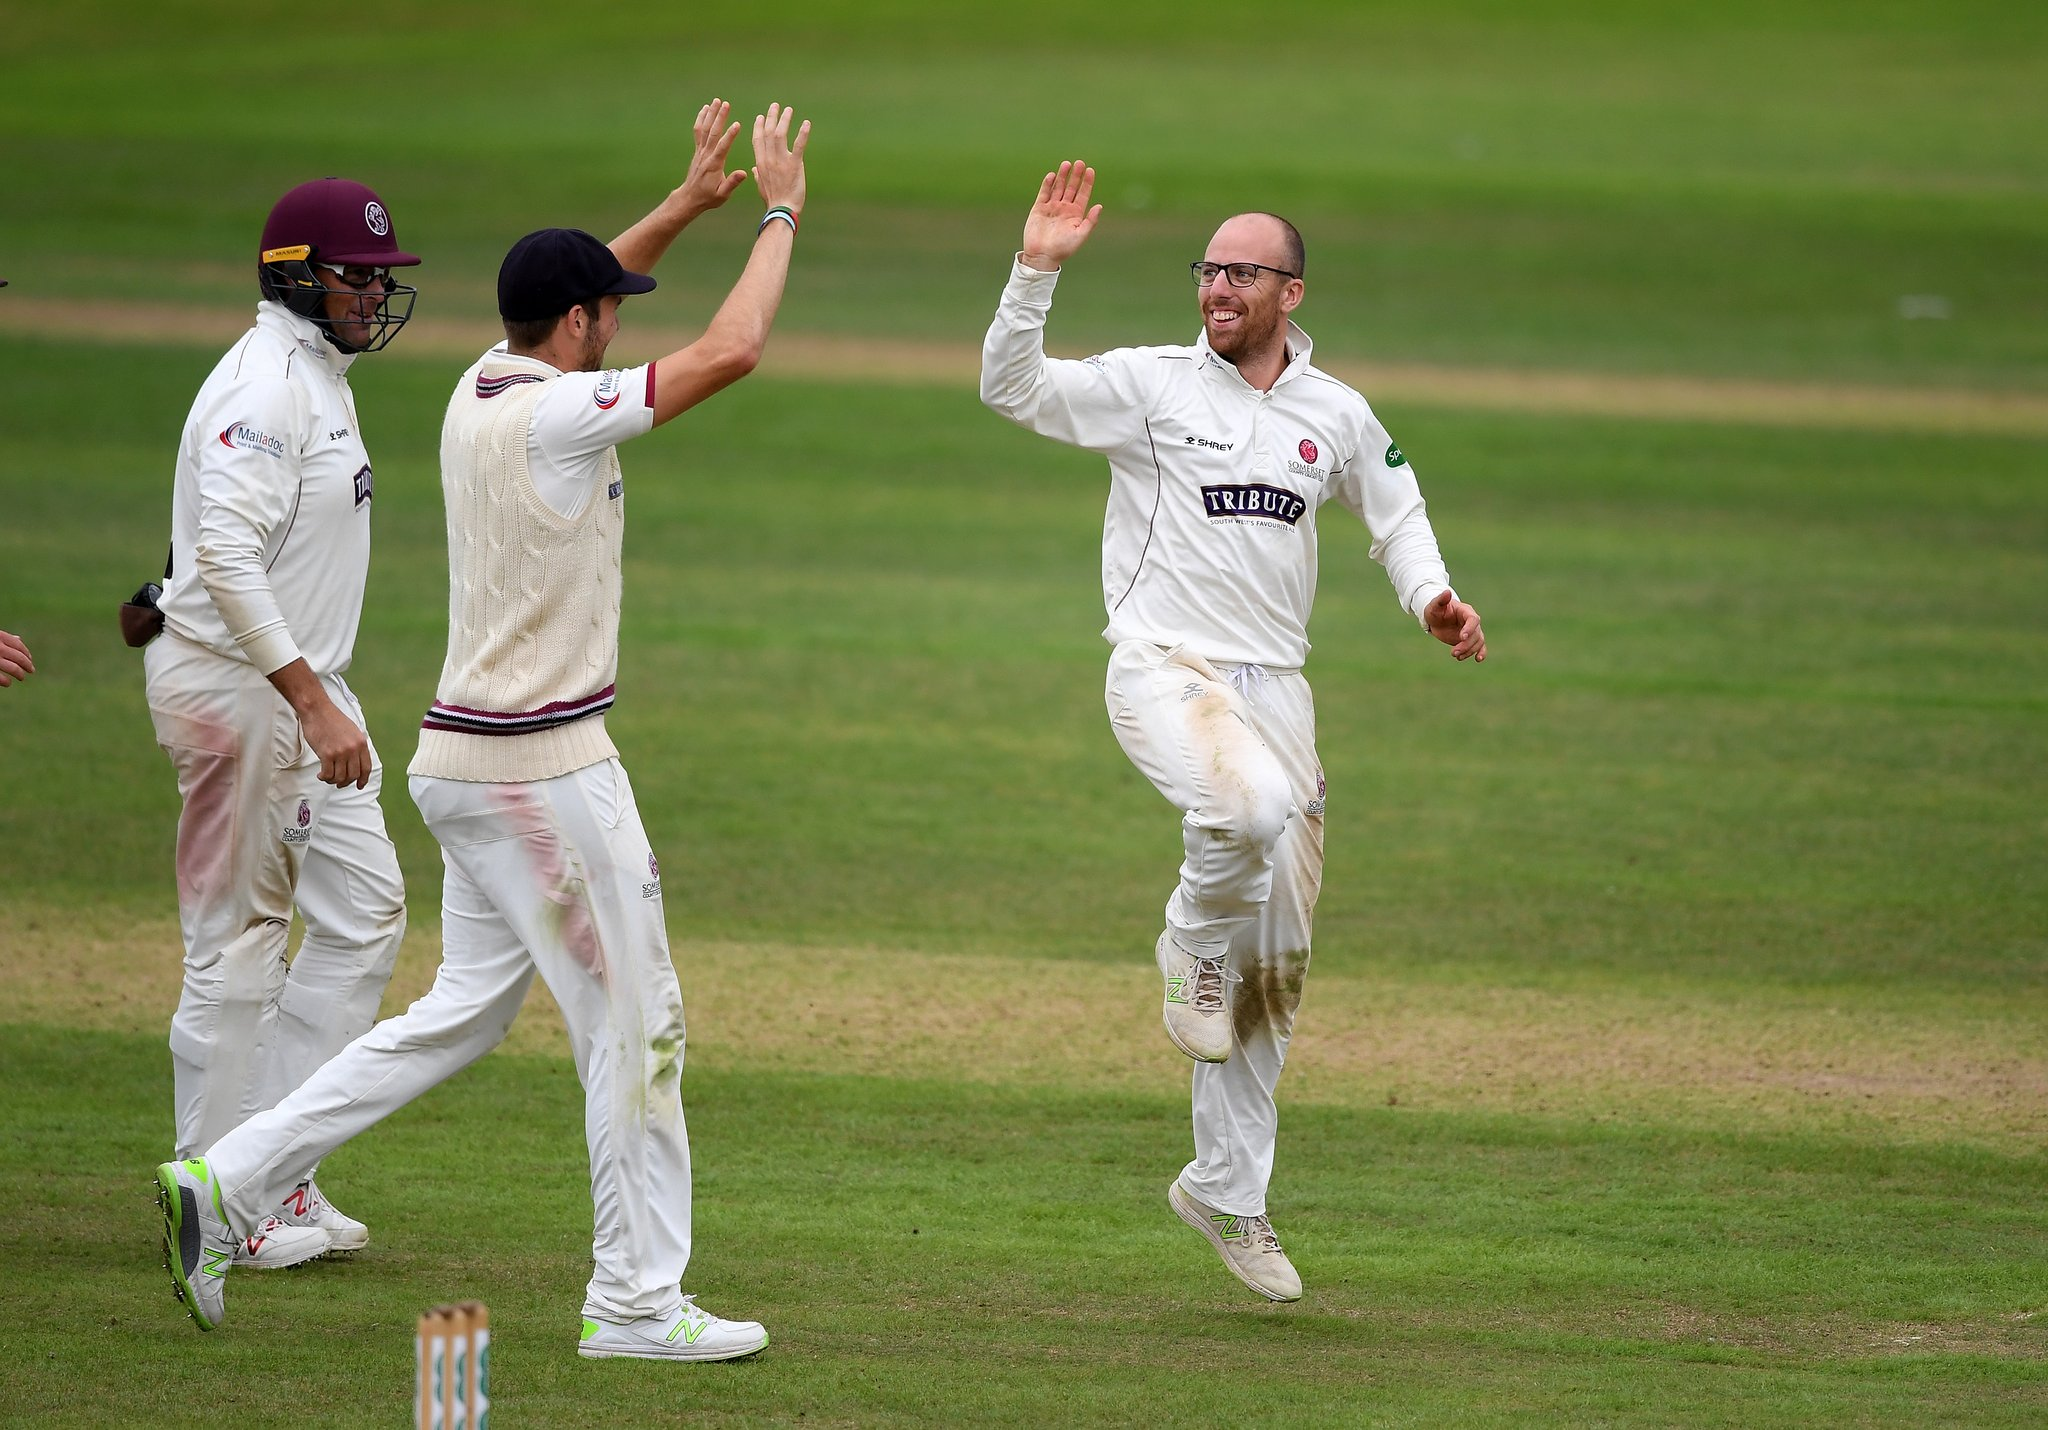 STELLAR PERFORMANCE: Jack Leach took six wickets to see off Notts. Pic: SCCC